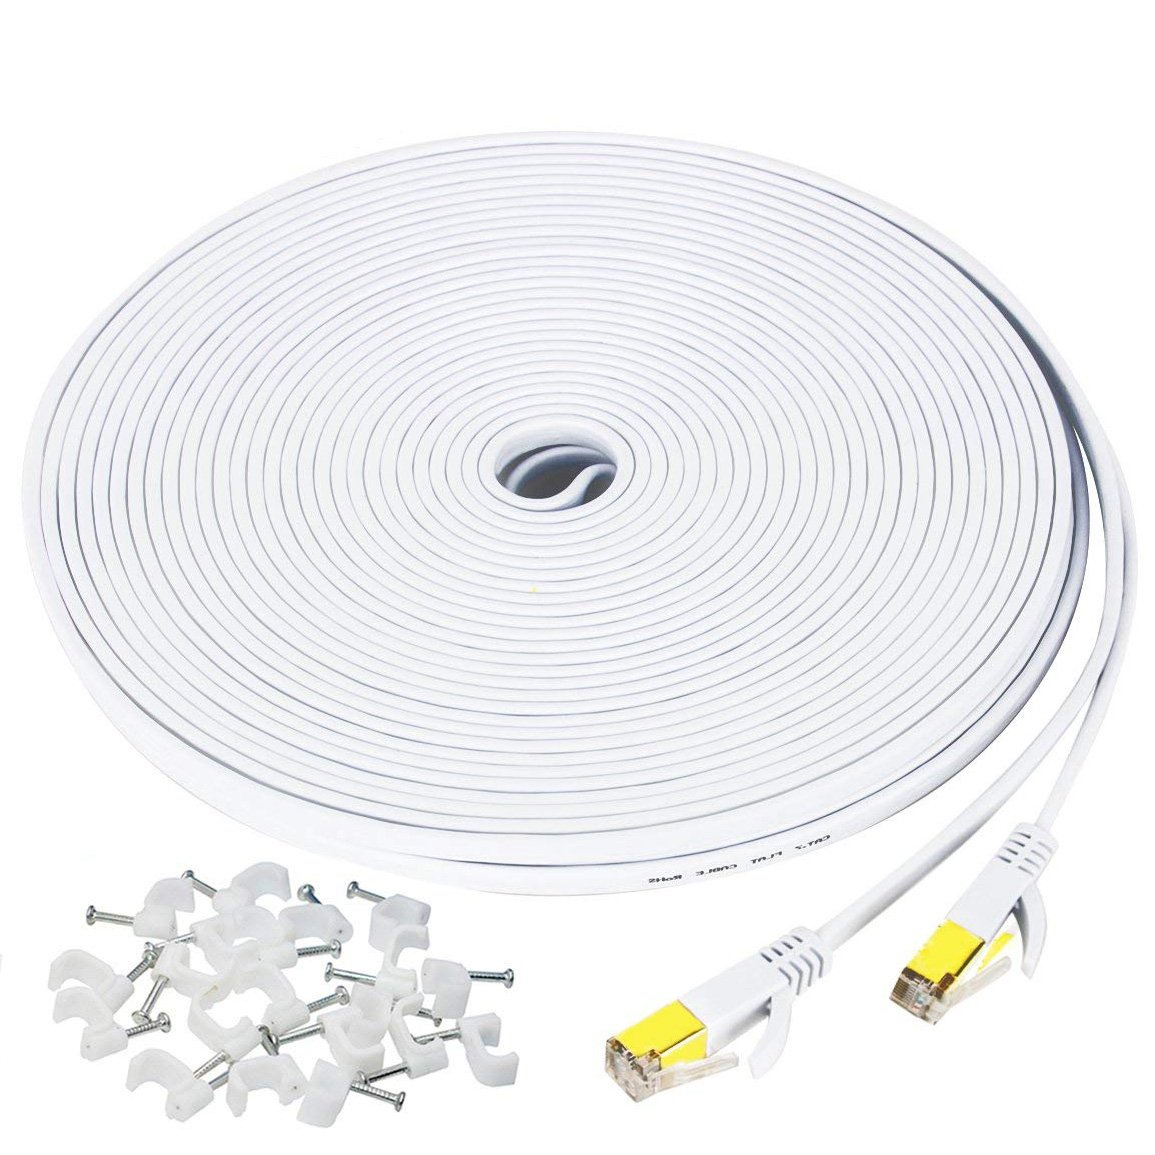 50 ft Ethernet Cable Cat7,Flat Gigabit Network Cable for Computer/Router with Clip&RJ45 Connector,Higher Speed Than Cat6/Cat5 Shielded Internet LAN Cord for PS4,Xbox,Adapter,Switch,Modem,PC-White by MATEIN (Image #1)